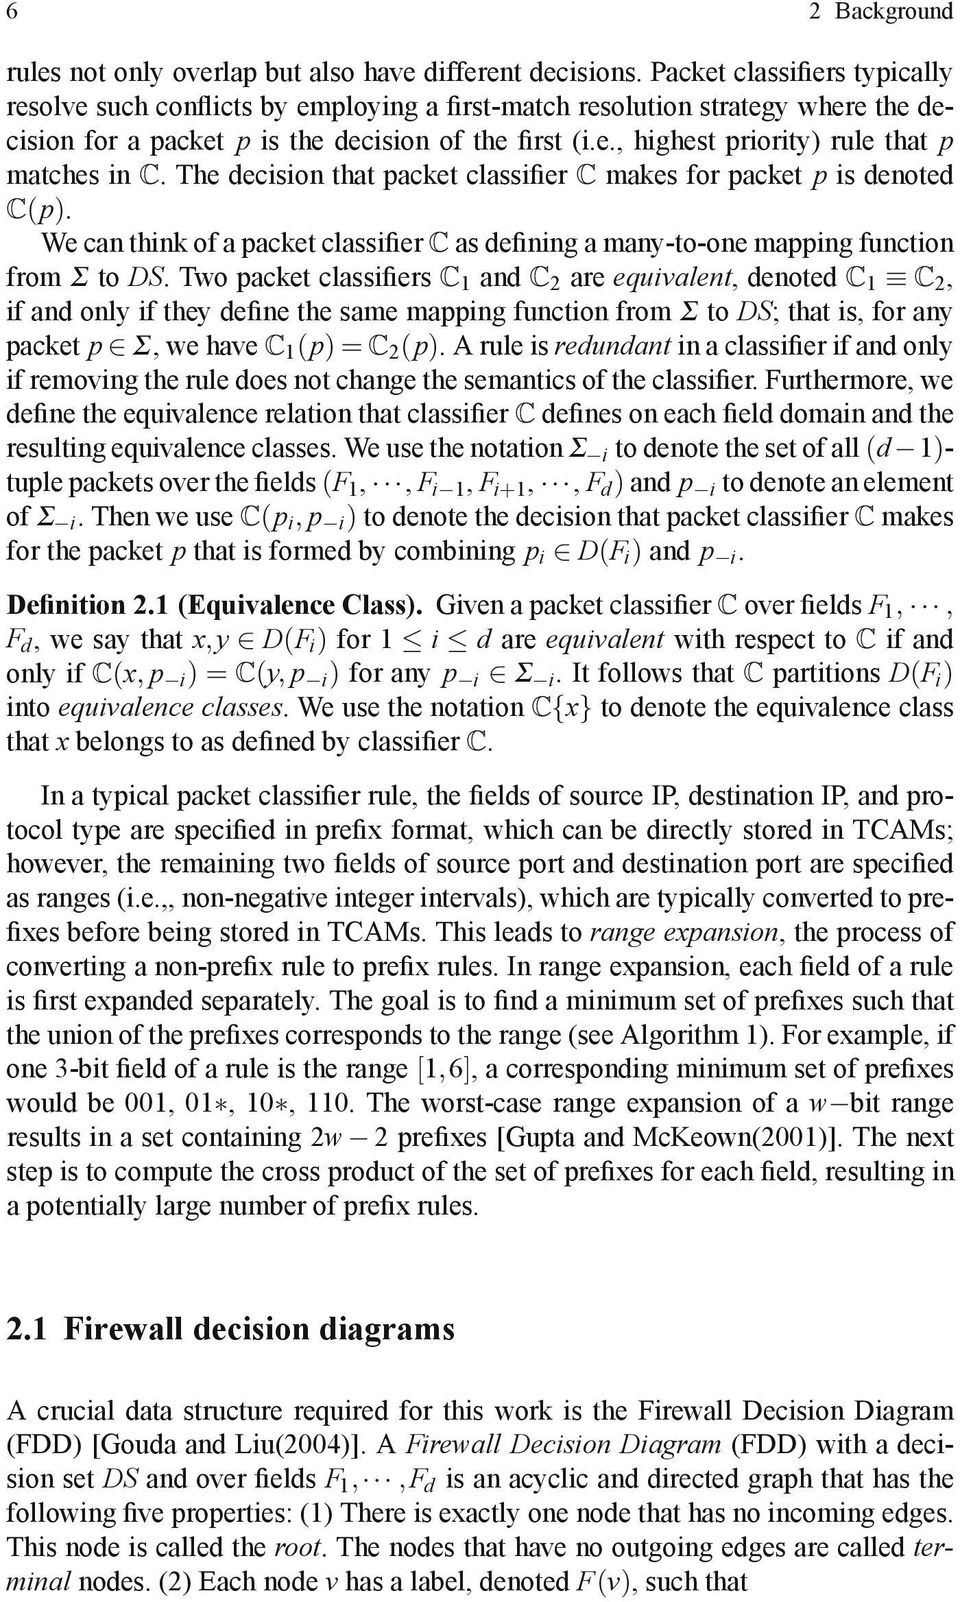 The decision that packet classi er C makes for packet p is denoted C(p). We can think of a packet classi er C as de ning a many-to-one mapping function from Σ to DS.